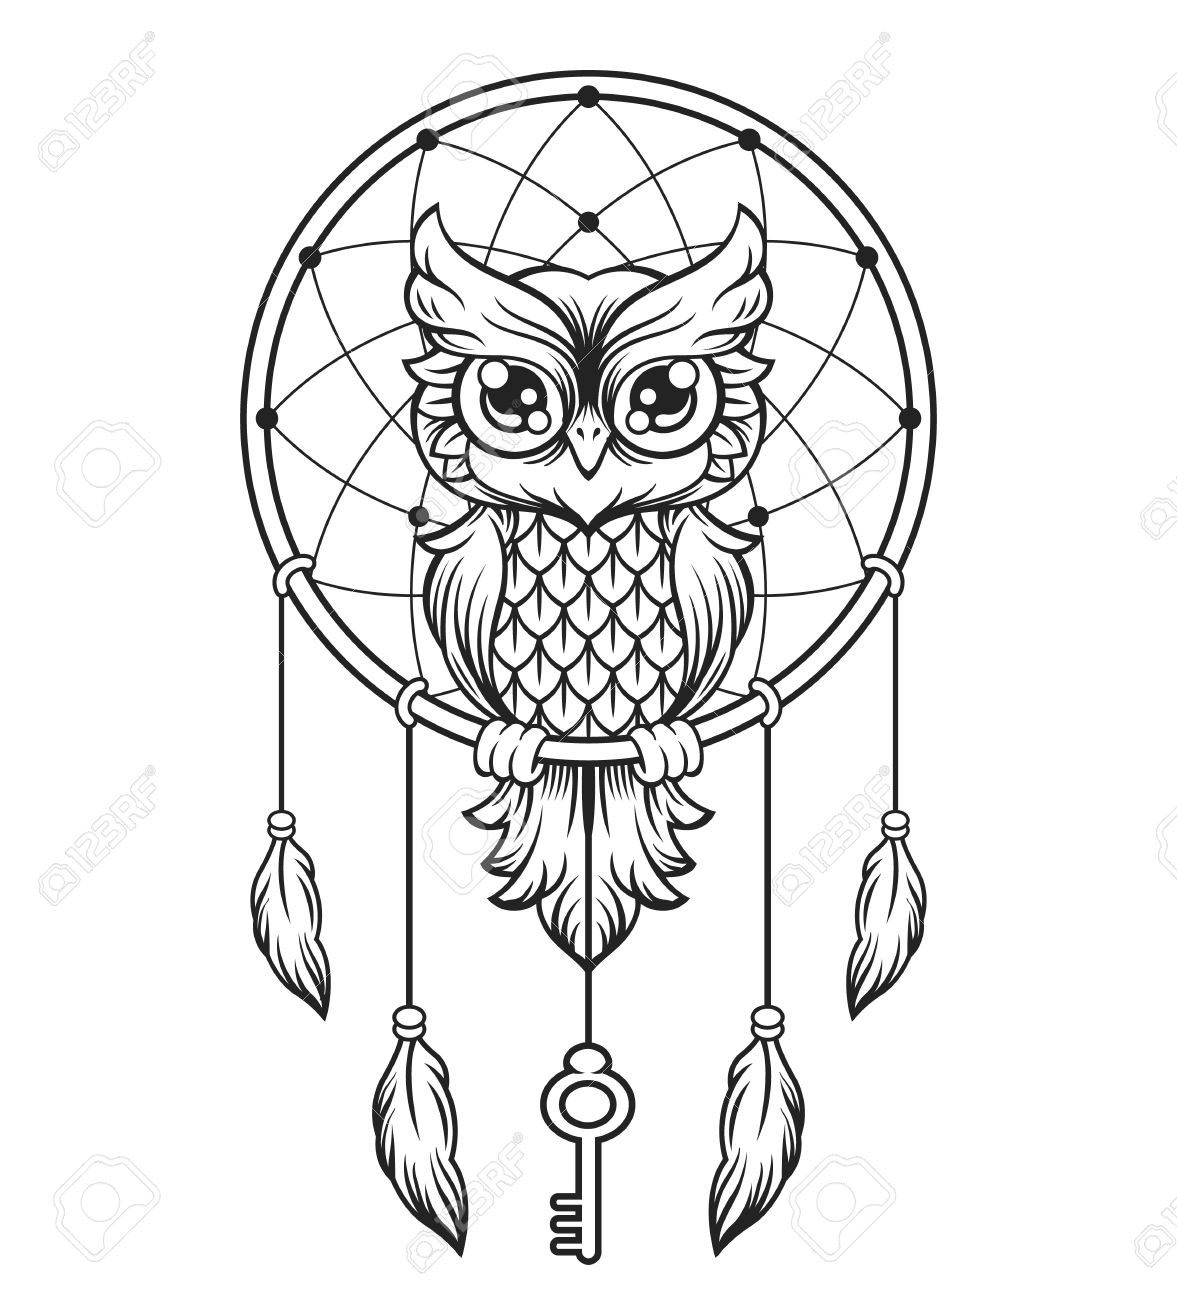 1177x1300 Dream Catcher Black And White Owl. Royalty Free Cliparts, Vectors